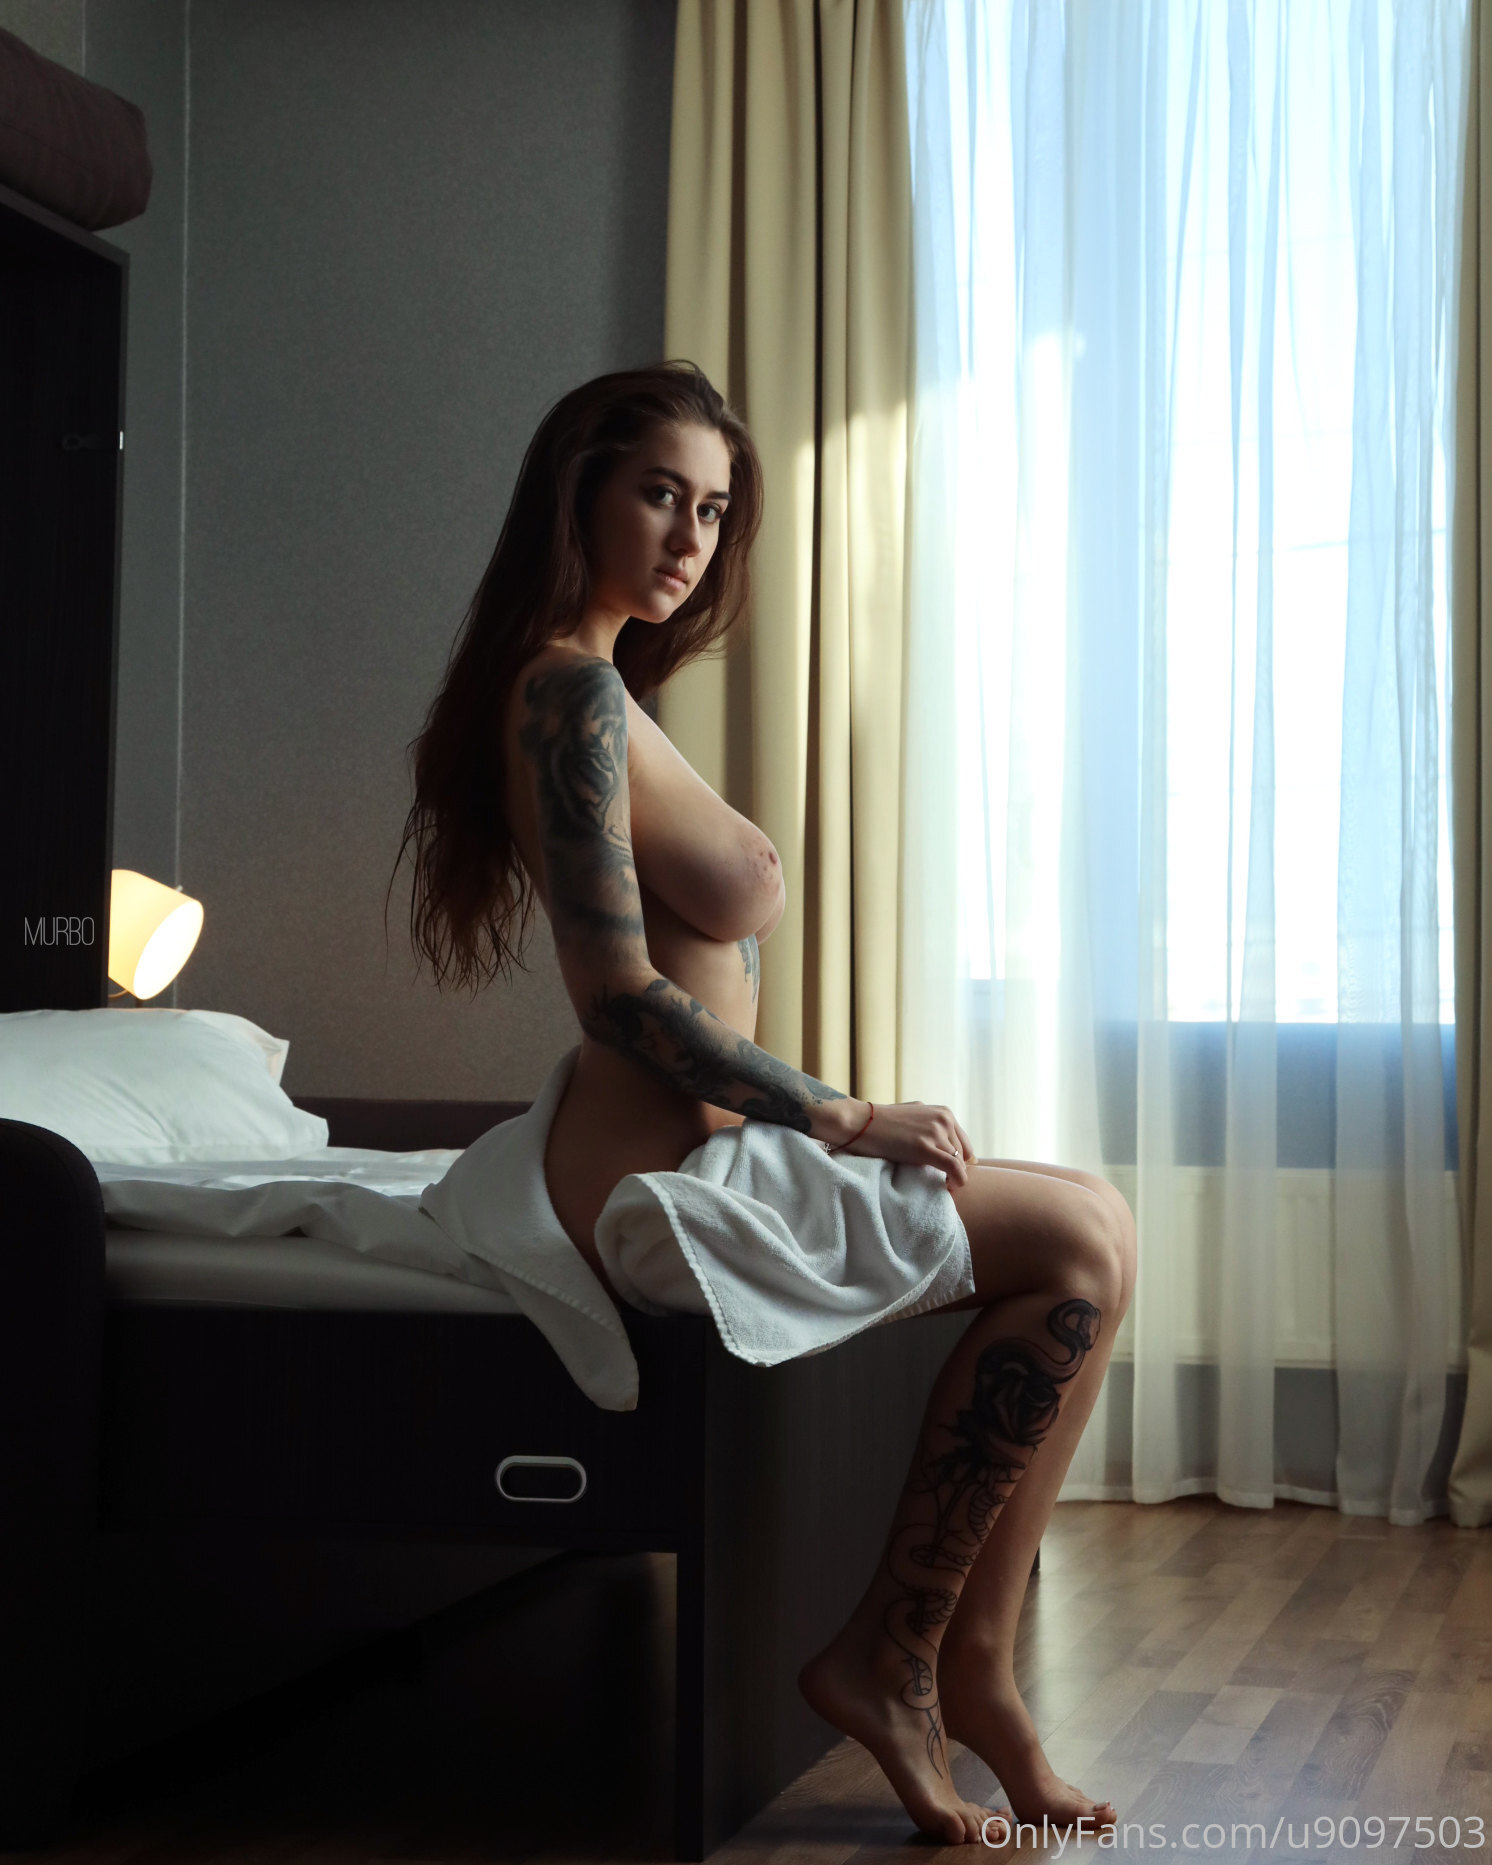 Tanya Bahtina Porn OnlyFans Leaked Nudes 61